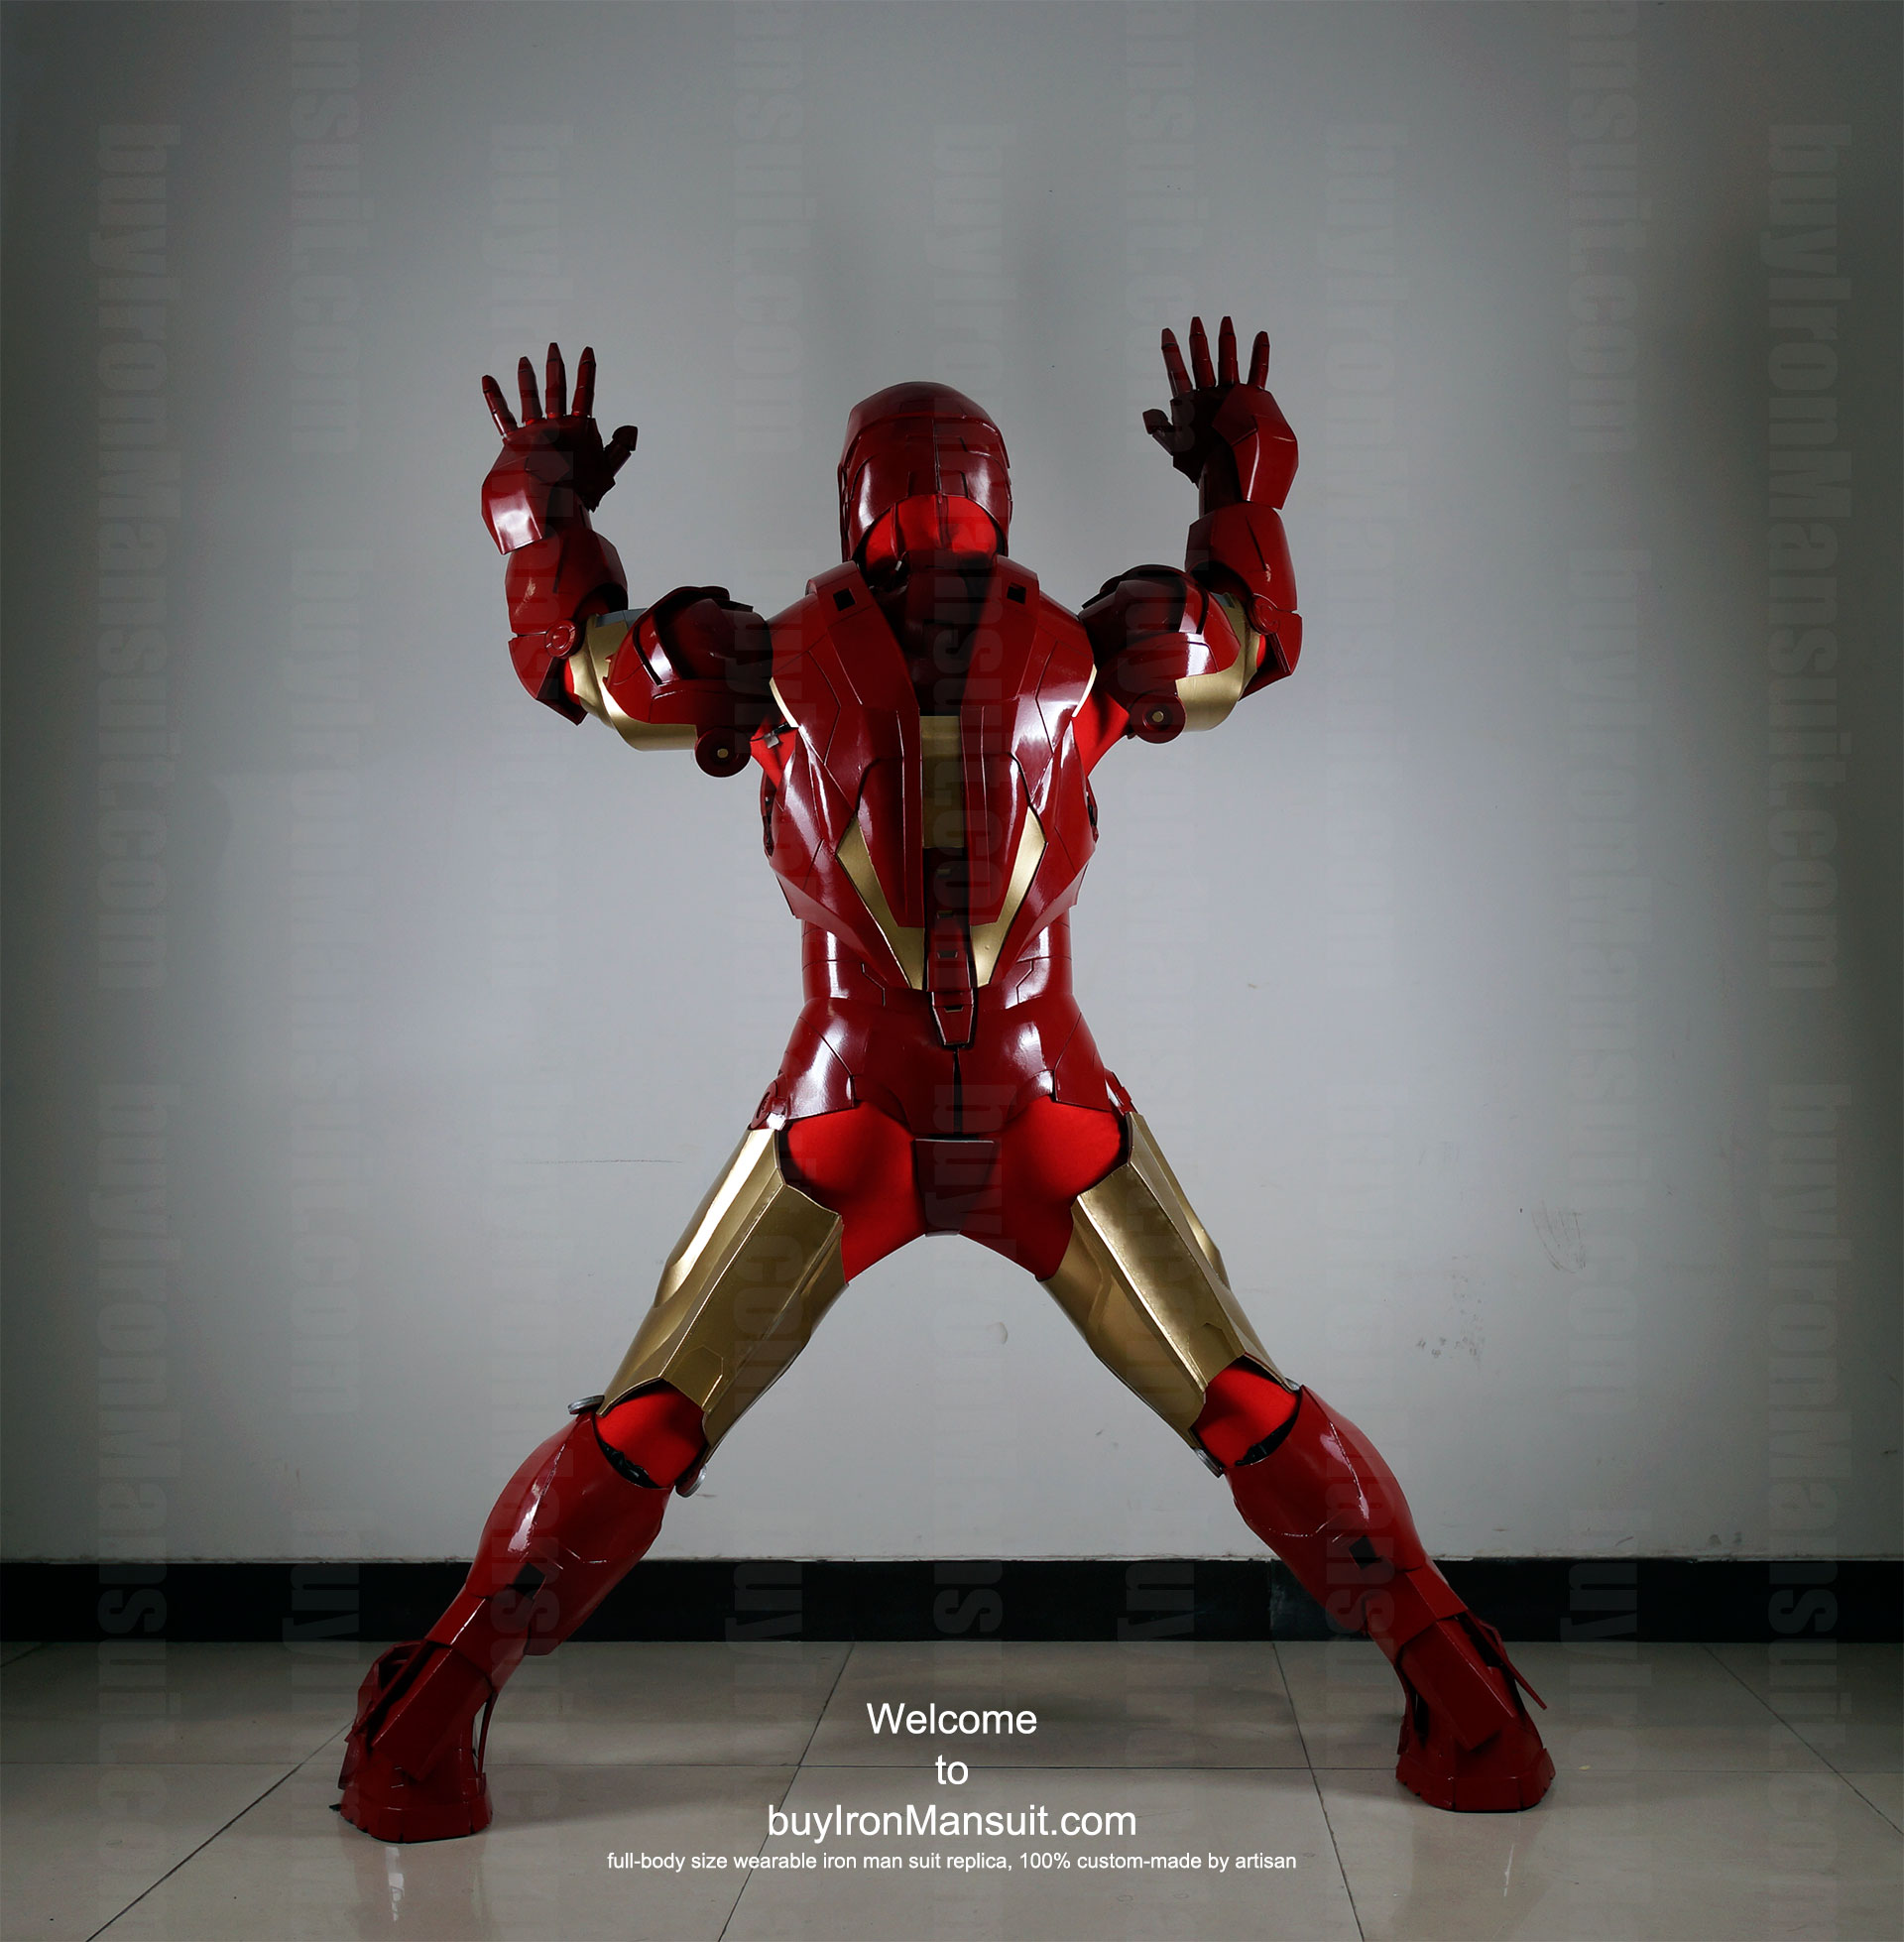 Buy Iron Man Suit Replica Buy Iron Man Suit Mark 6